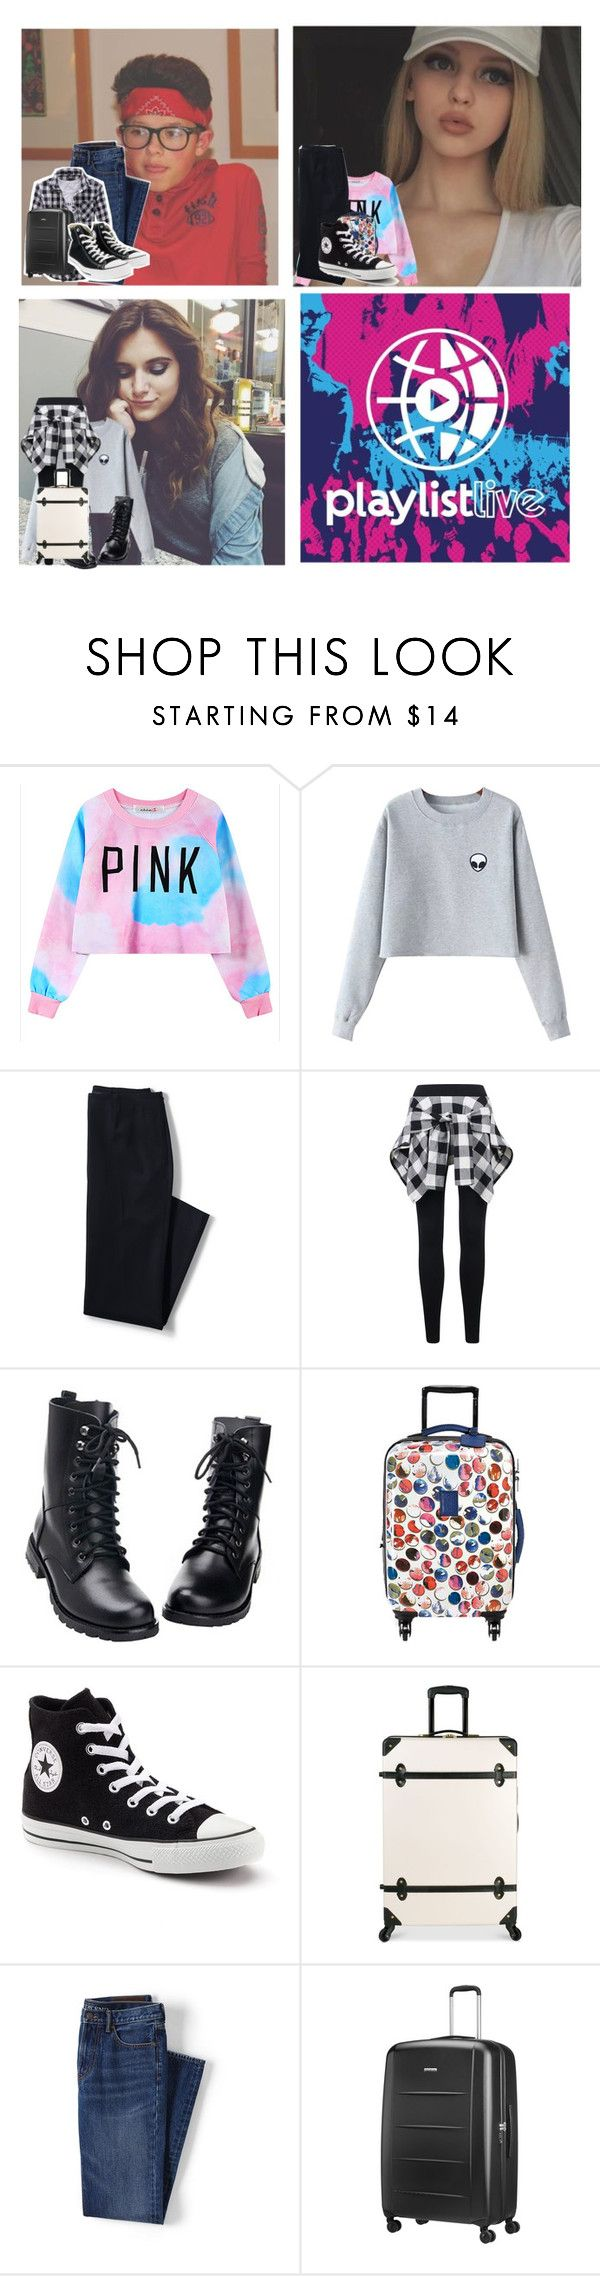 """Playlist live Orlando"" by b-ookworm ❤ liked on Polyvore featuring Chicnova Fashion, Lands' End, Longchamp, Converse, Diane Von Furstenberg and Samsonite"